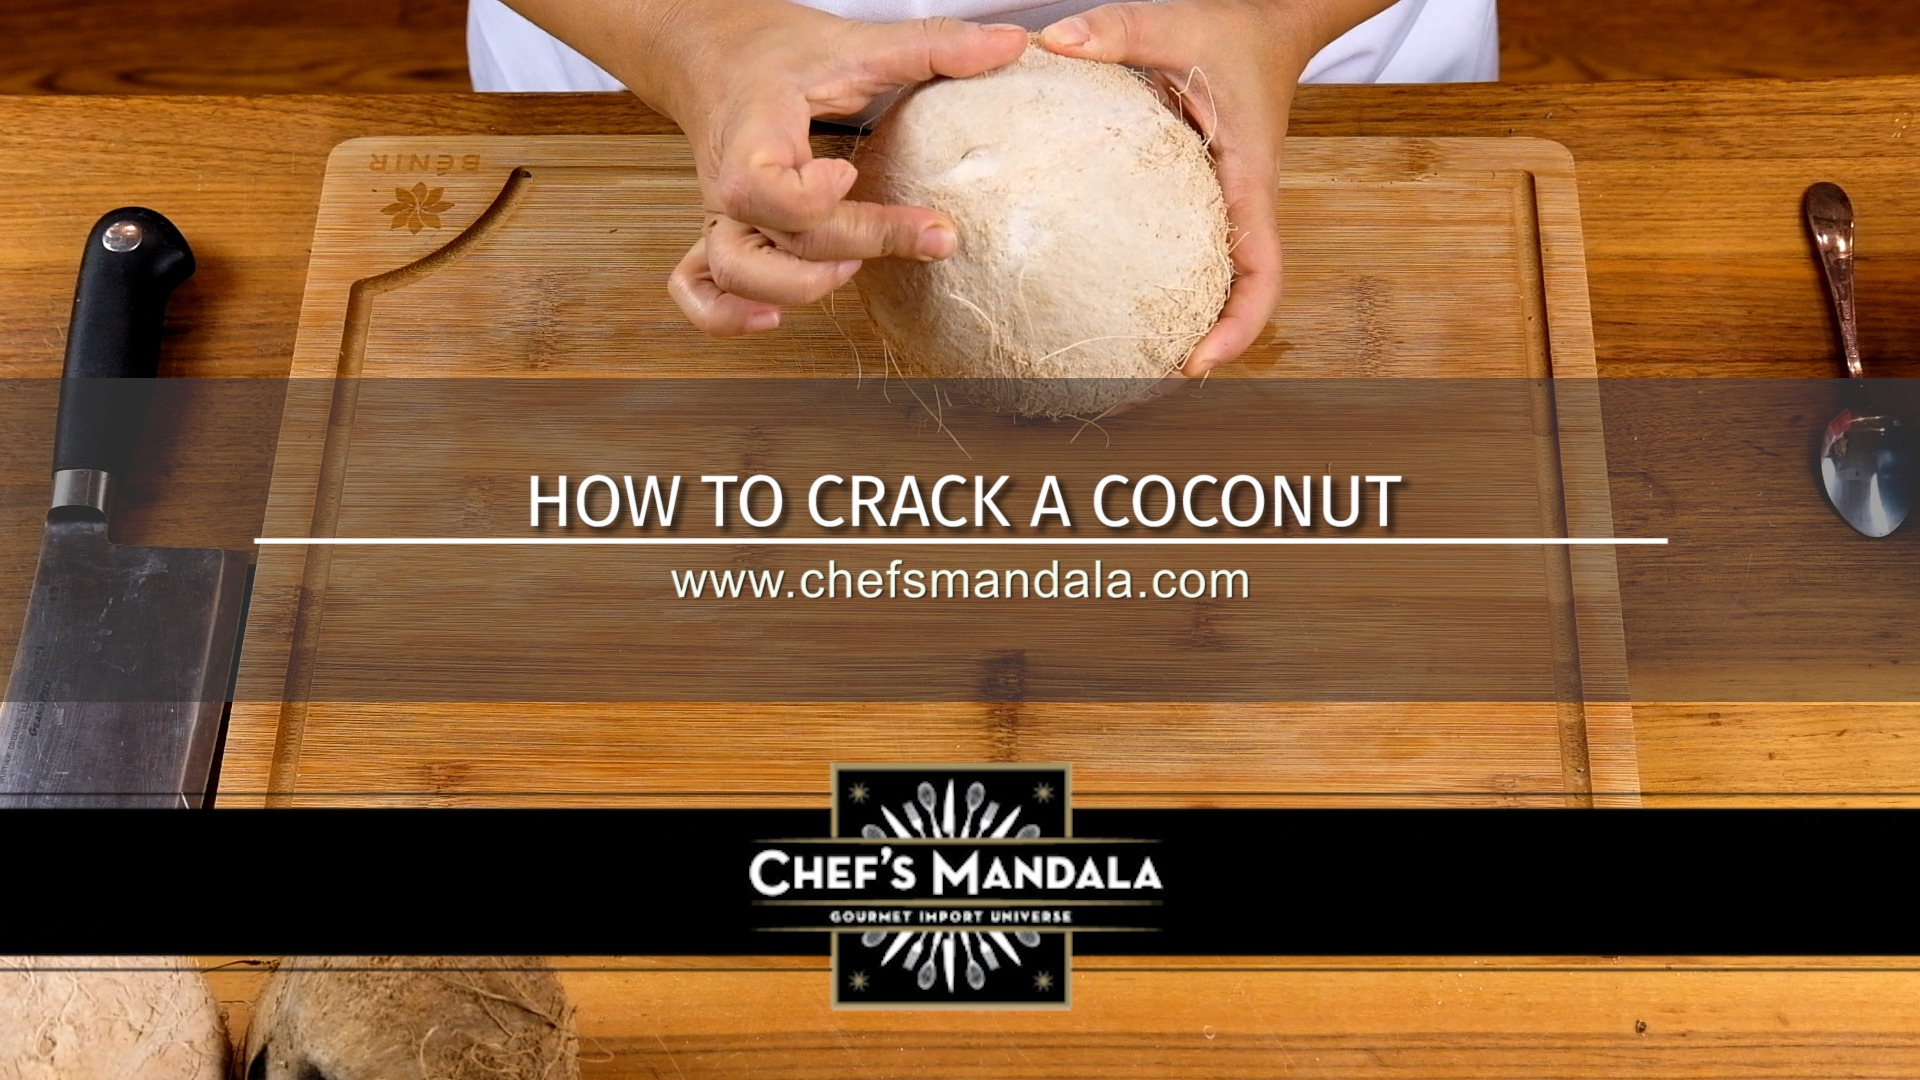 How to crack a cocunut